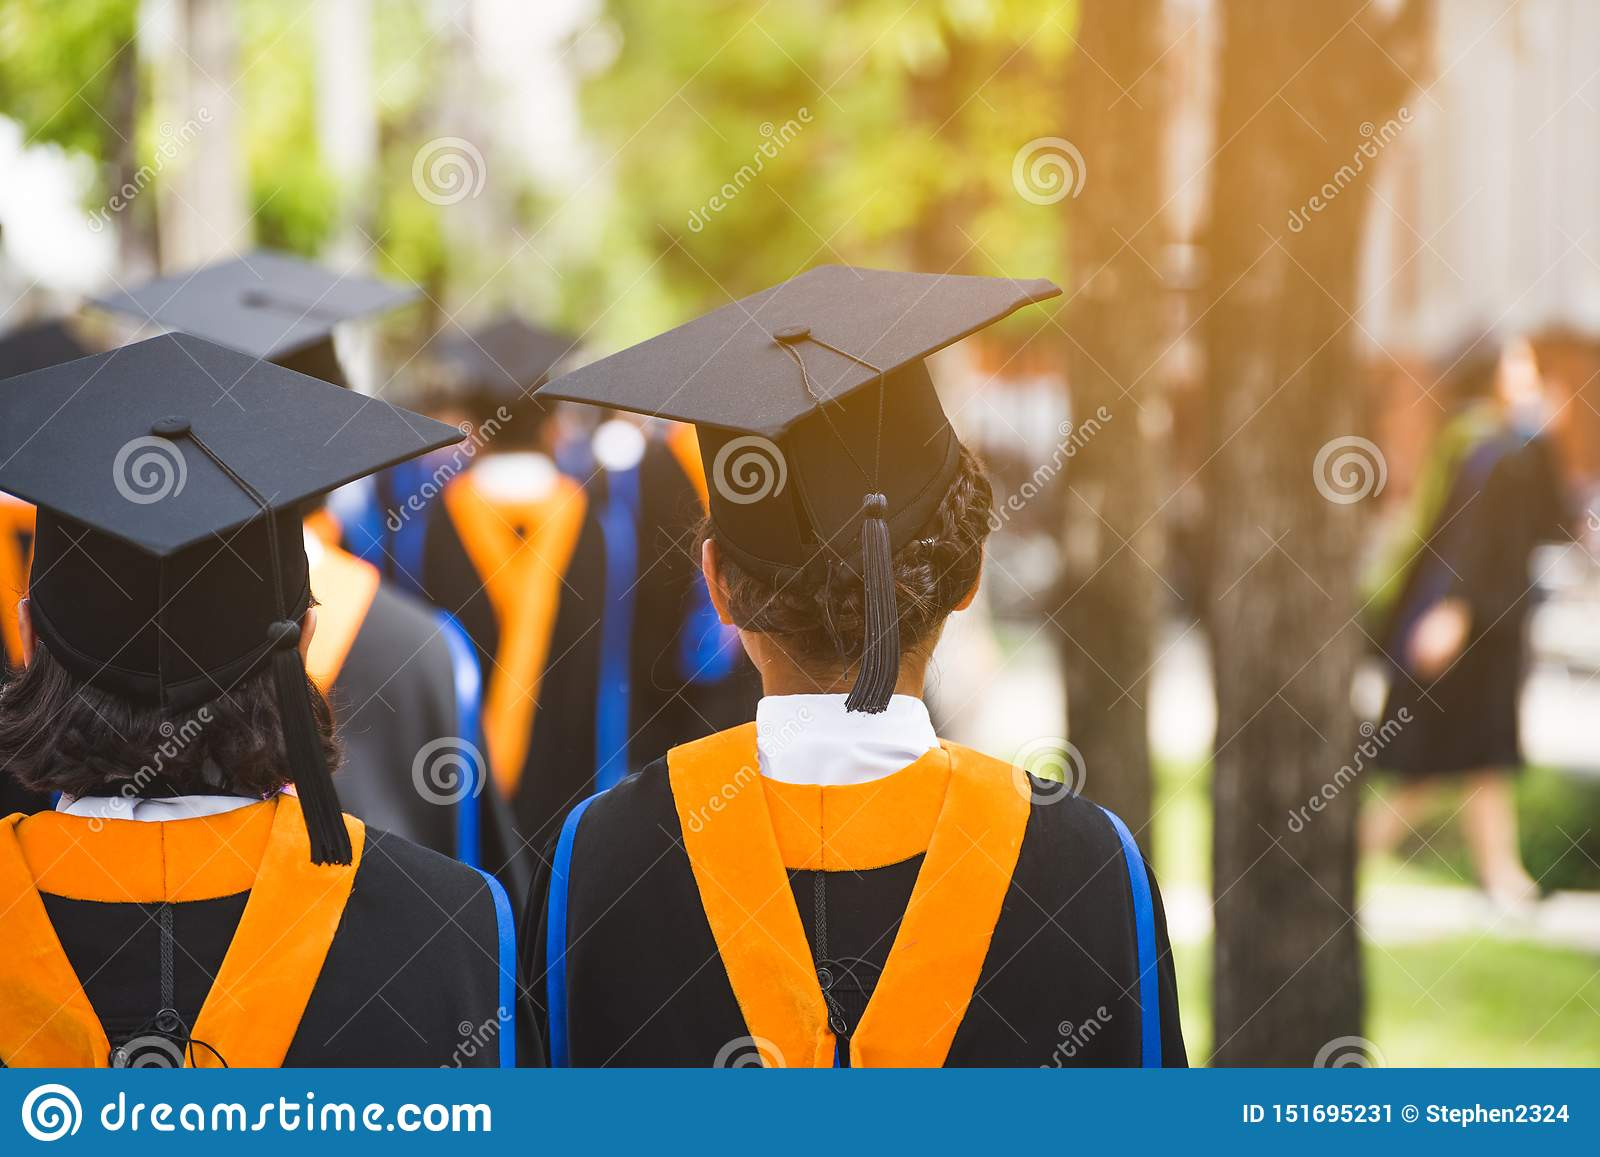 Group of Graduates during commencement. Concept education congratulation in University.